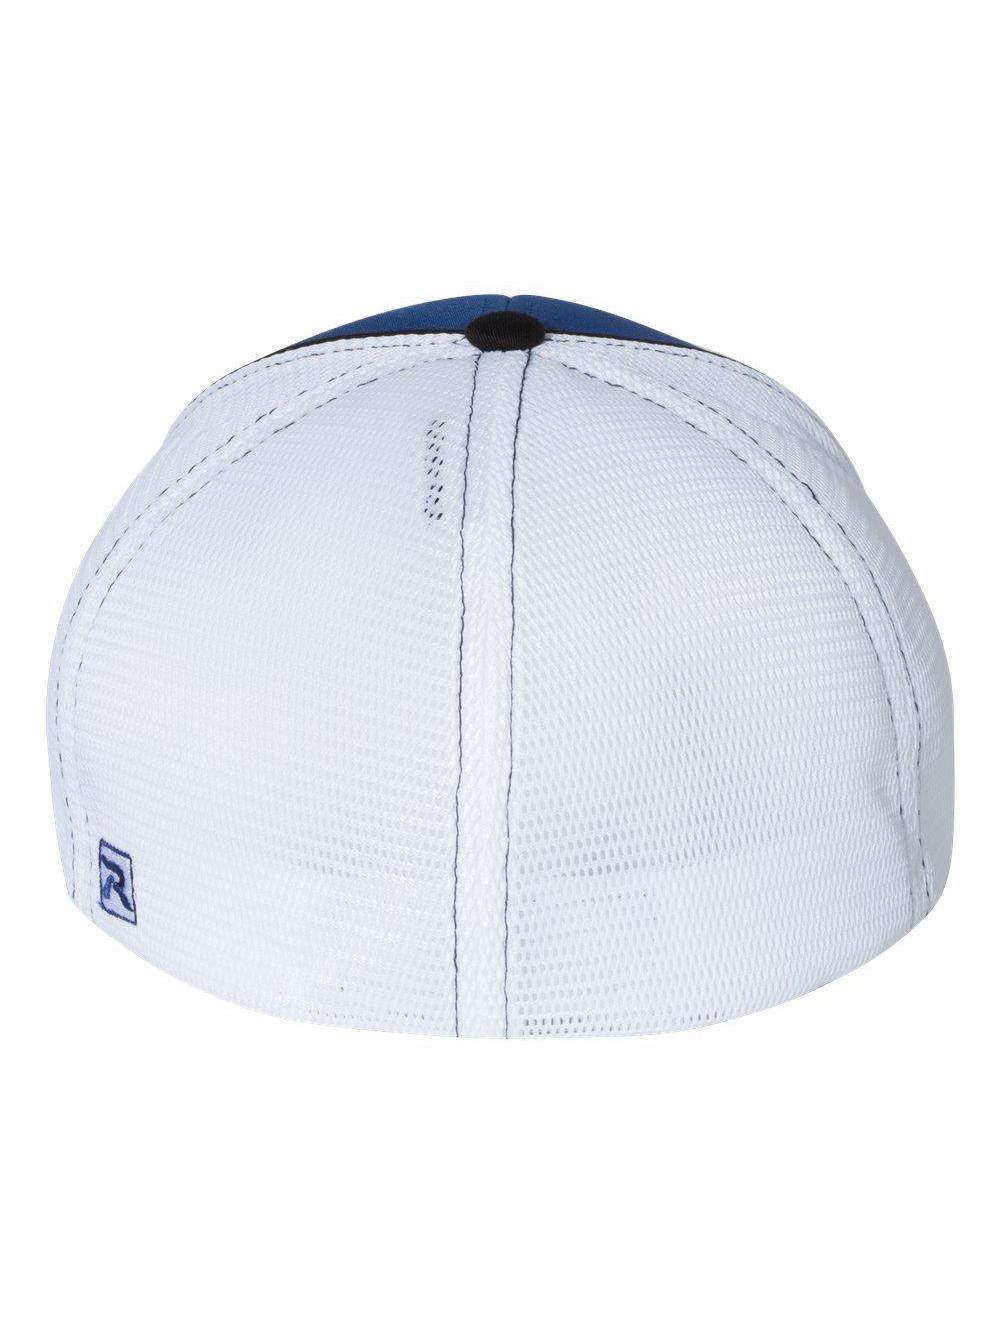 b63ec253de912 Richardson-Pulse-Sportmesh-Cap-with-R-Flex-172 thumbnail